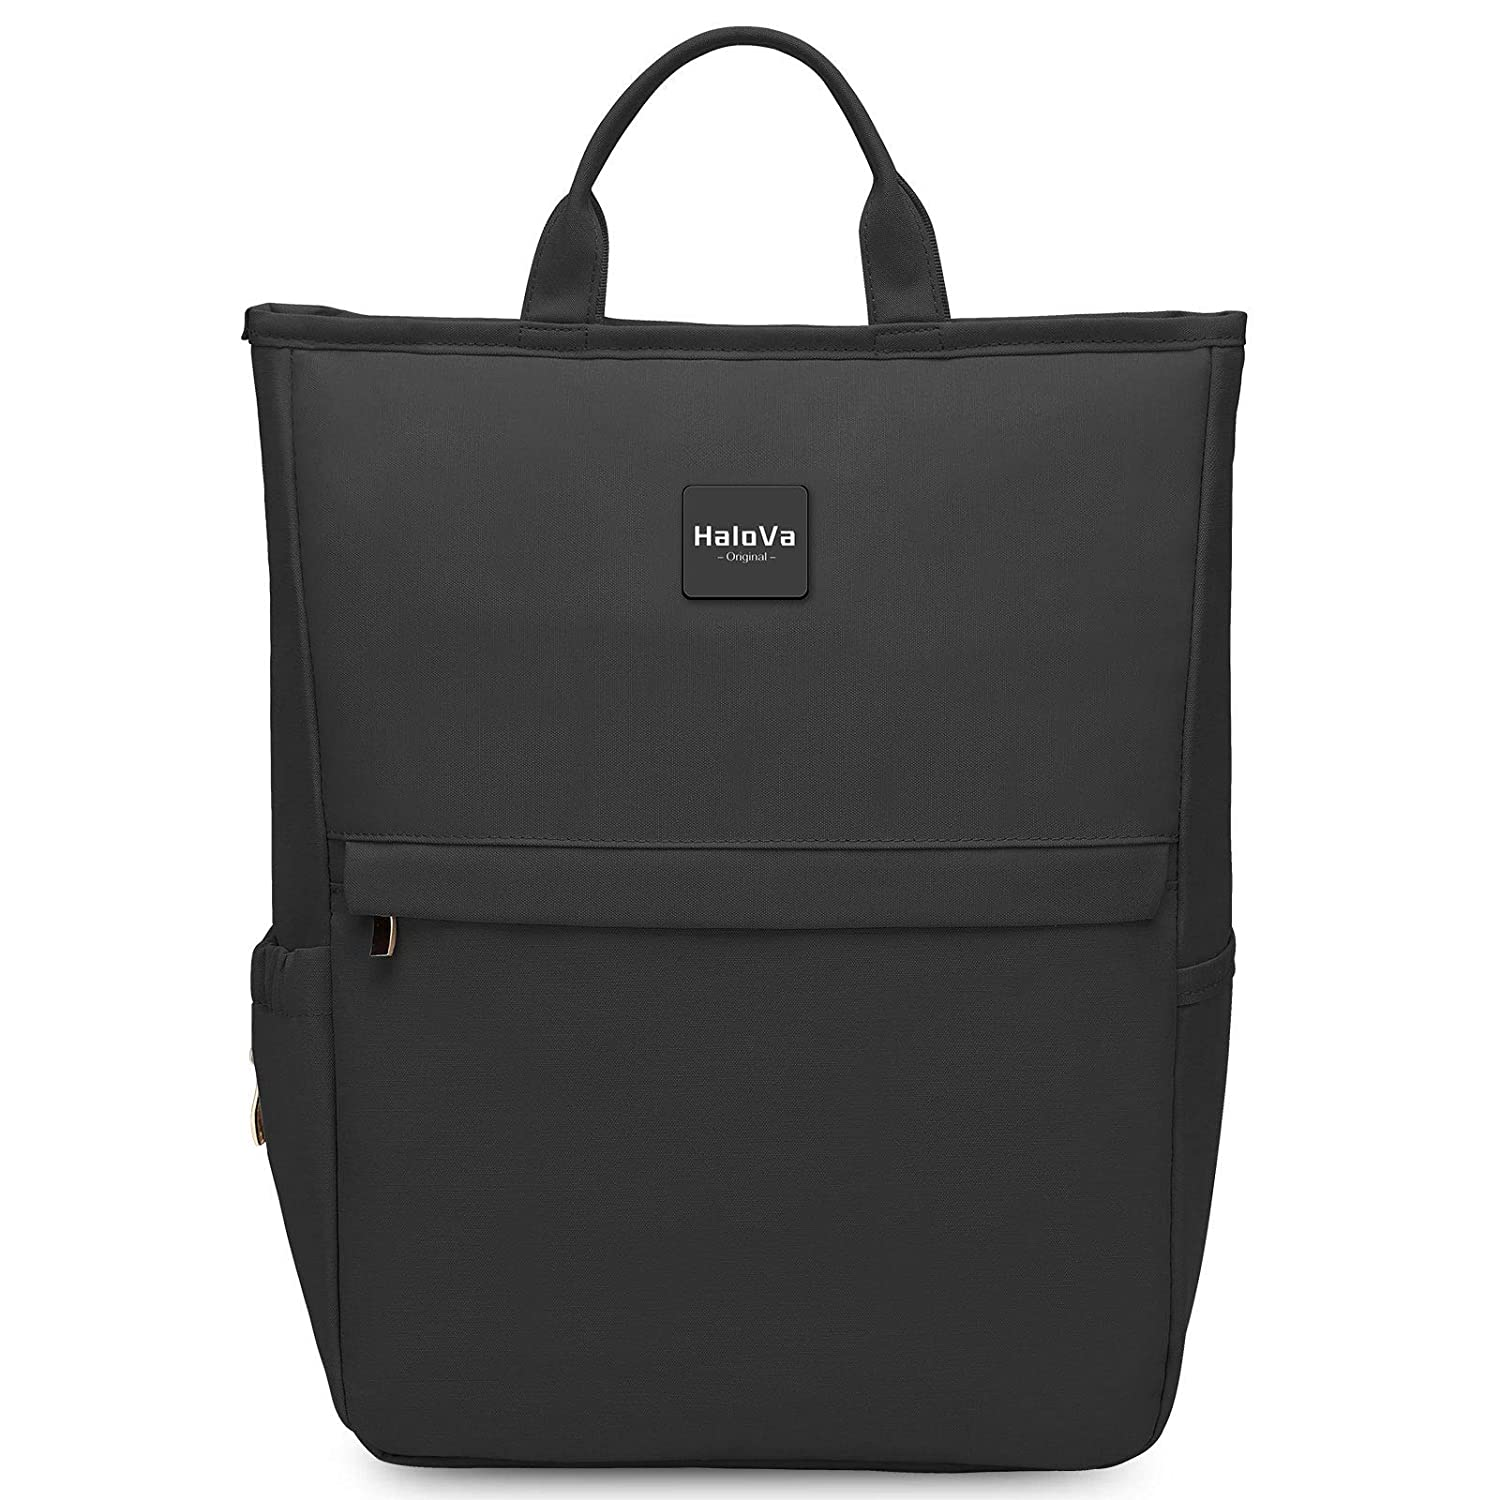 HaloVa-Diaper-Bag/